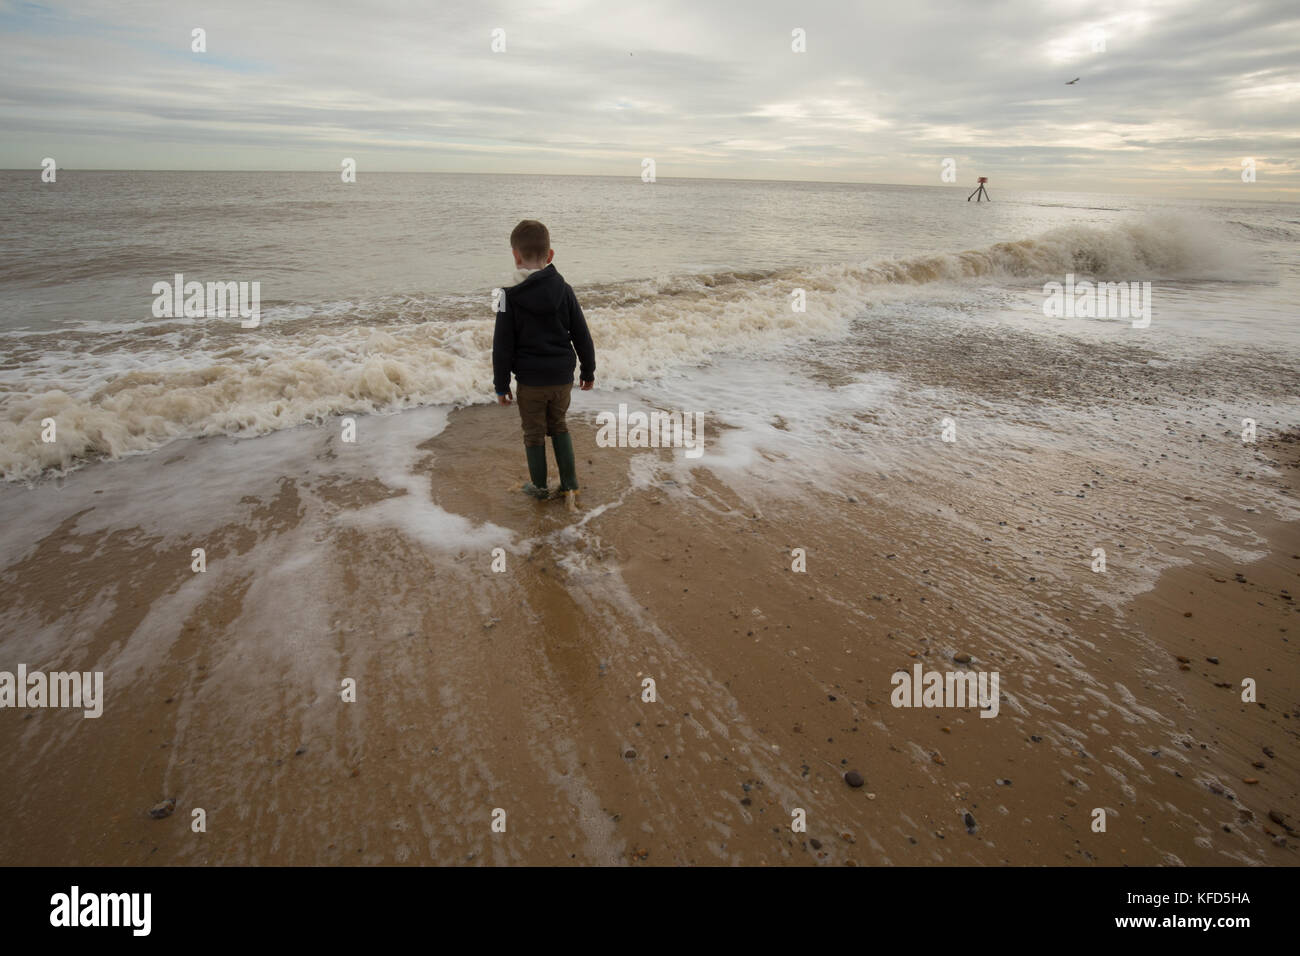 Boy contemplating the waves on an Autumn beach in Suffolk, England. - Stock Image